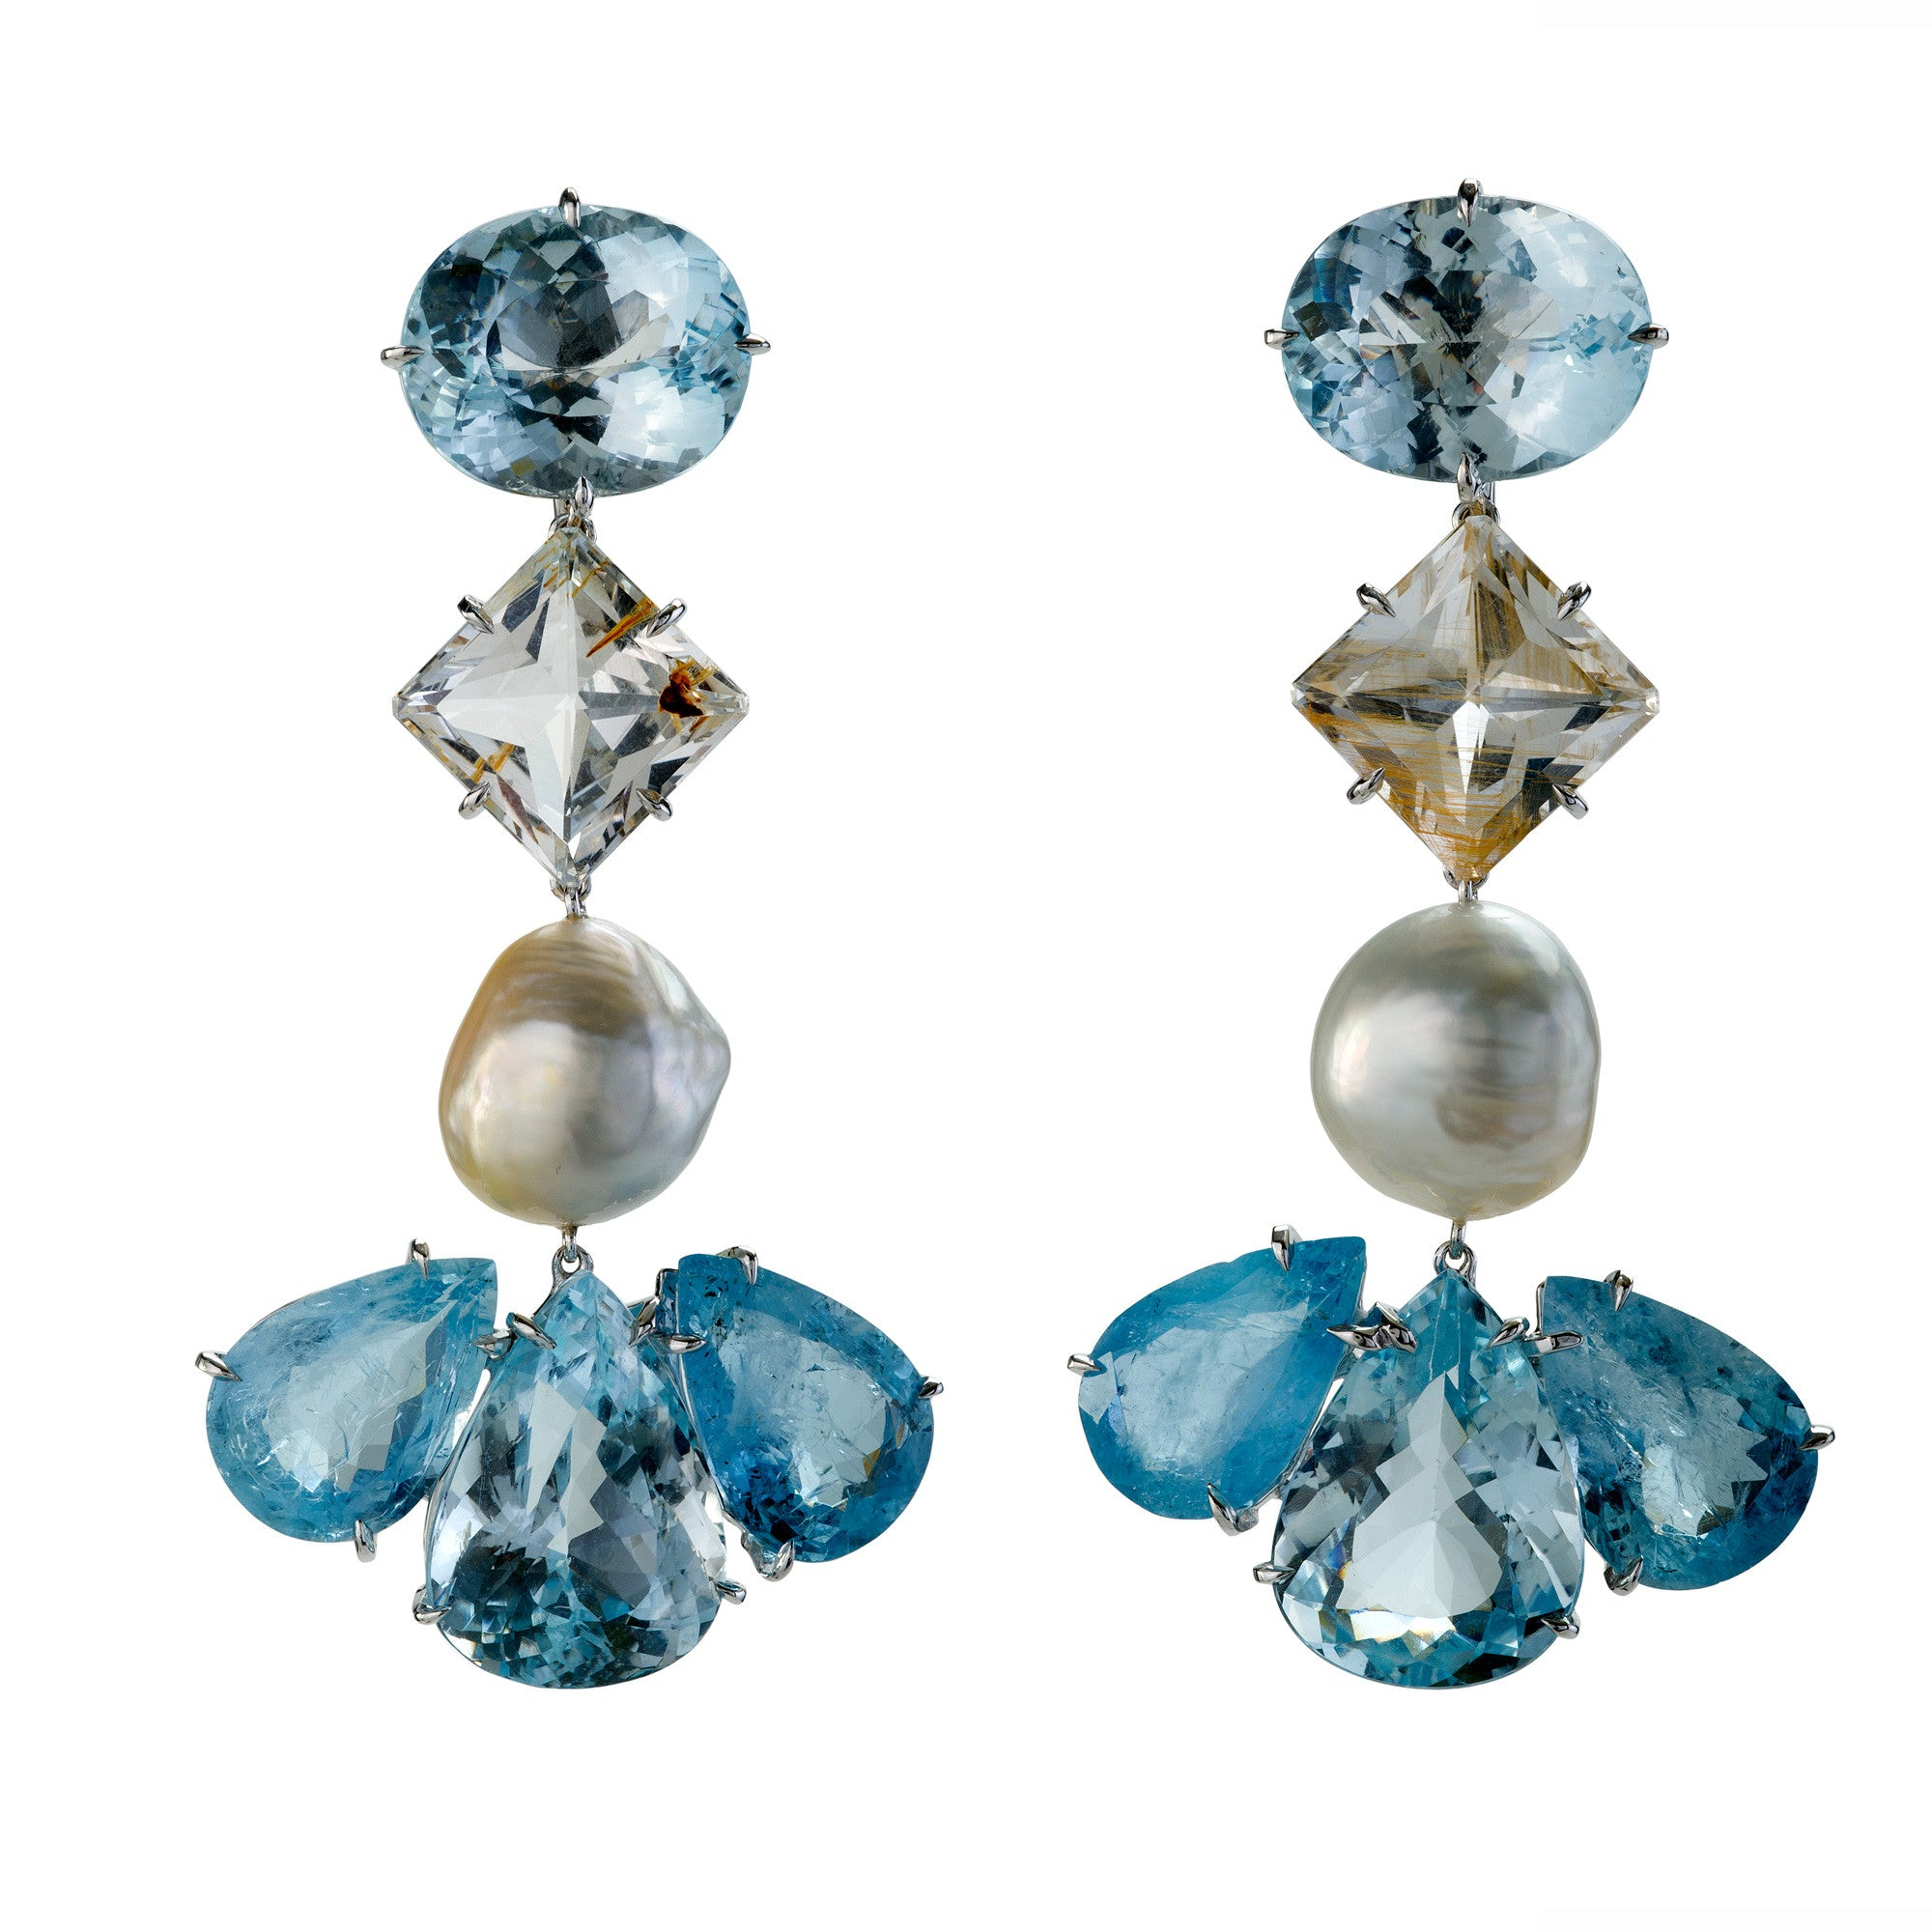 DUSTER VI aquamarine earrings